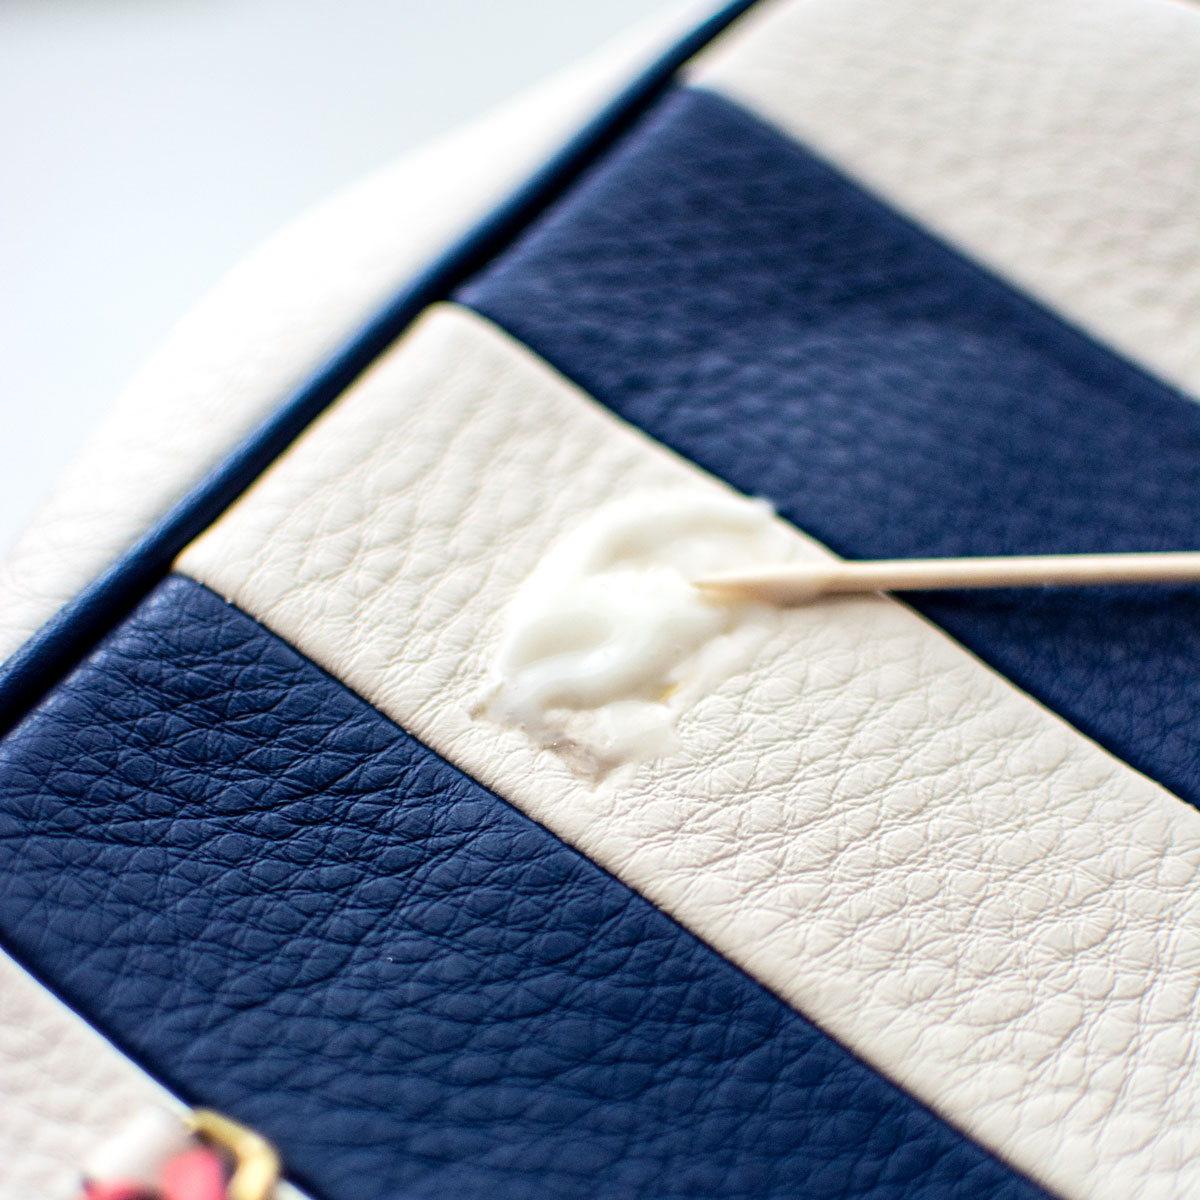 How to Remove Monograms from J.Crew Bags